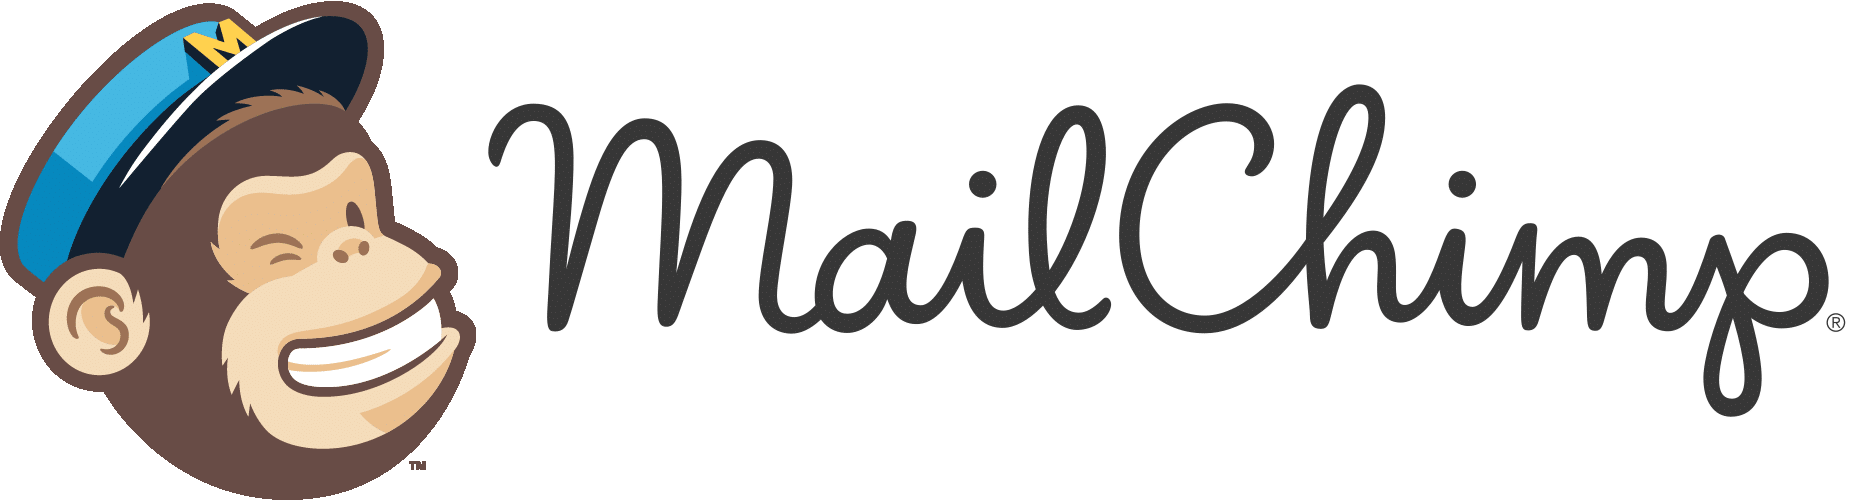 Mailchimp email marketing setup with shopify penguin e for Mailchimp ecommerce templates